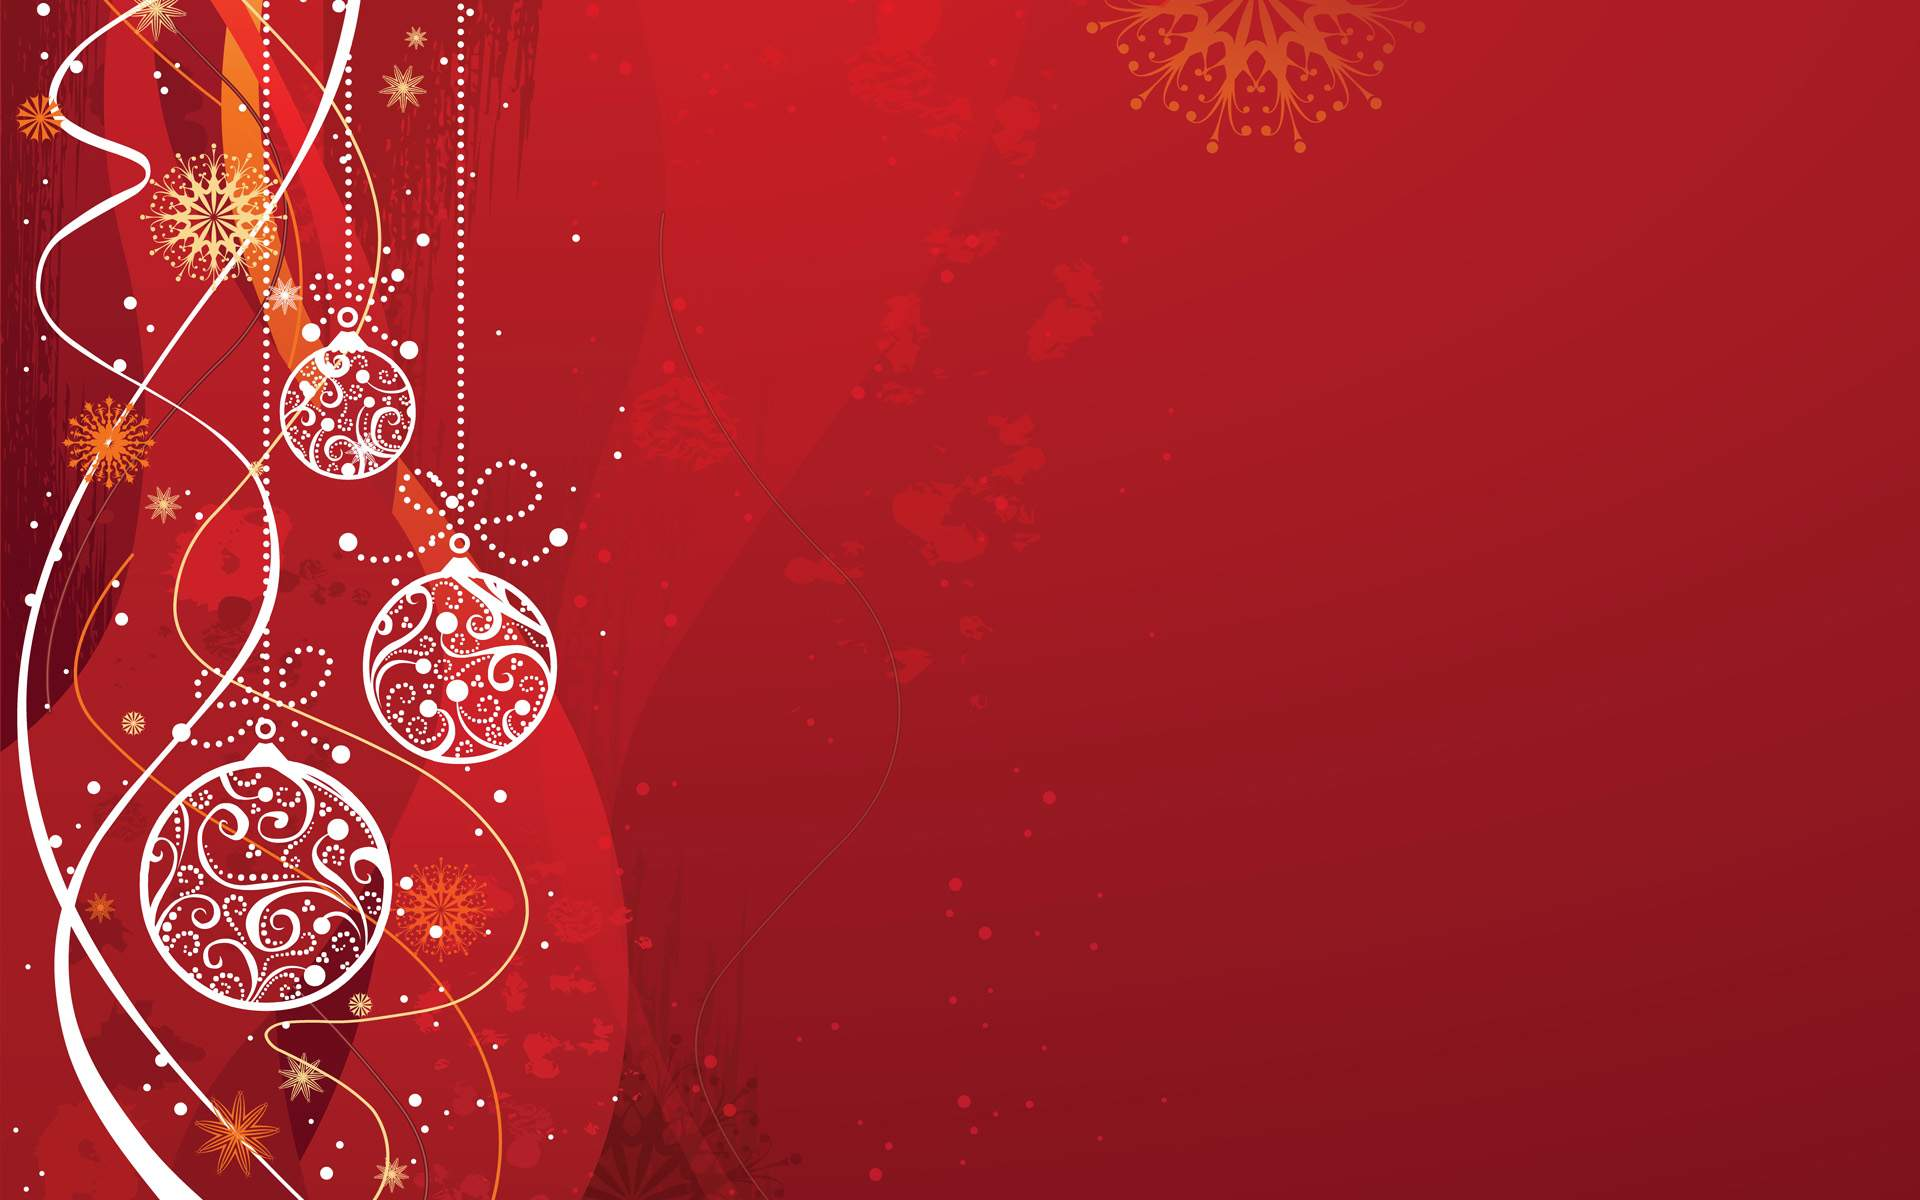 Backgrounds For Christmas 33 Wallpapers Adorable Wallpapers